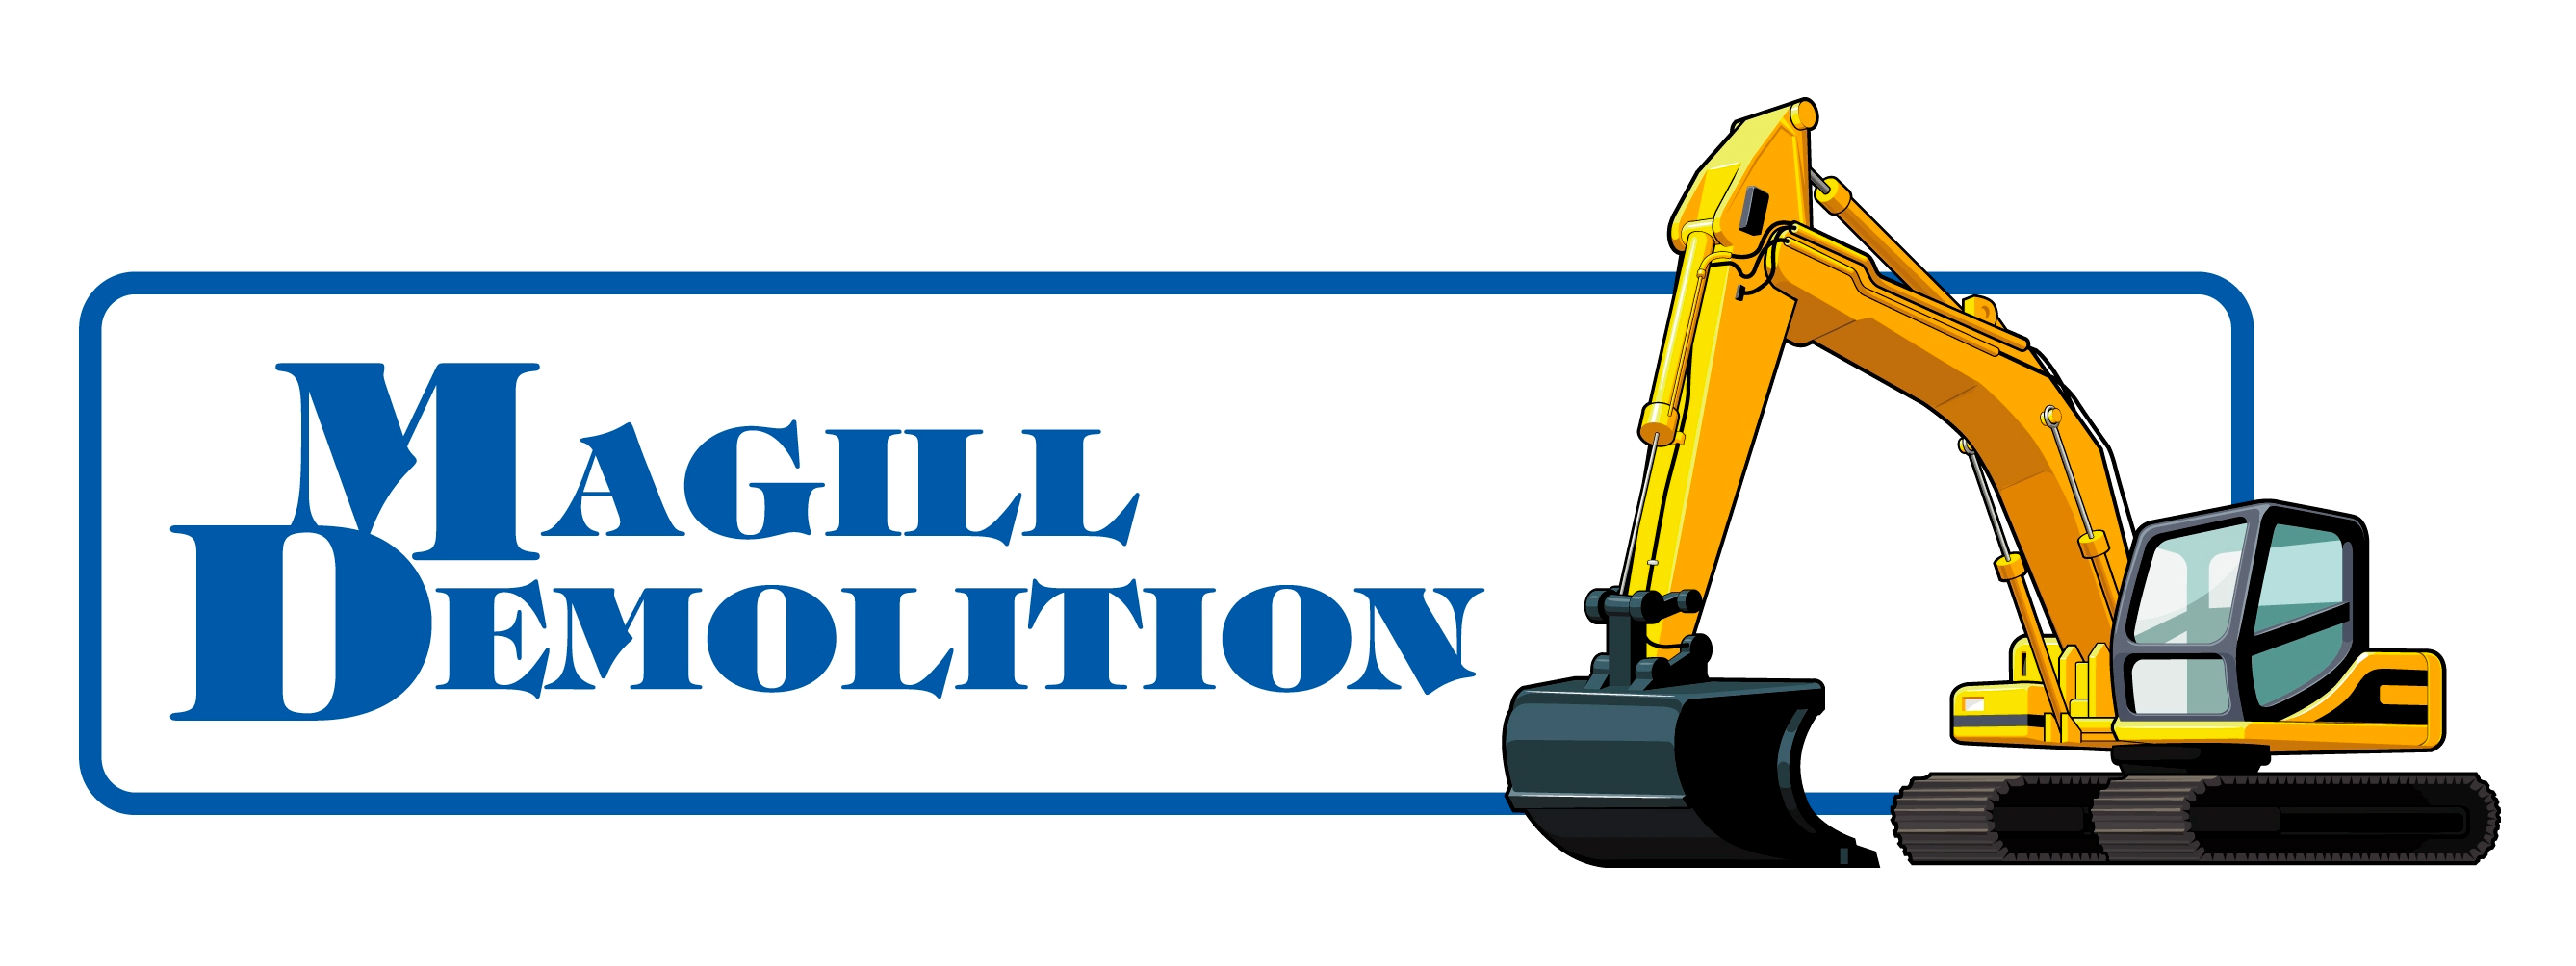 Magill Demolition | Residential Demolition in Adelaide – South Australia